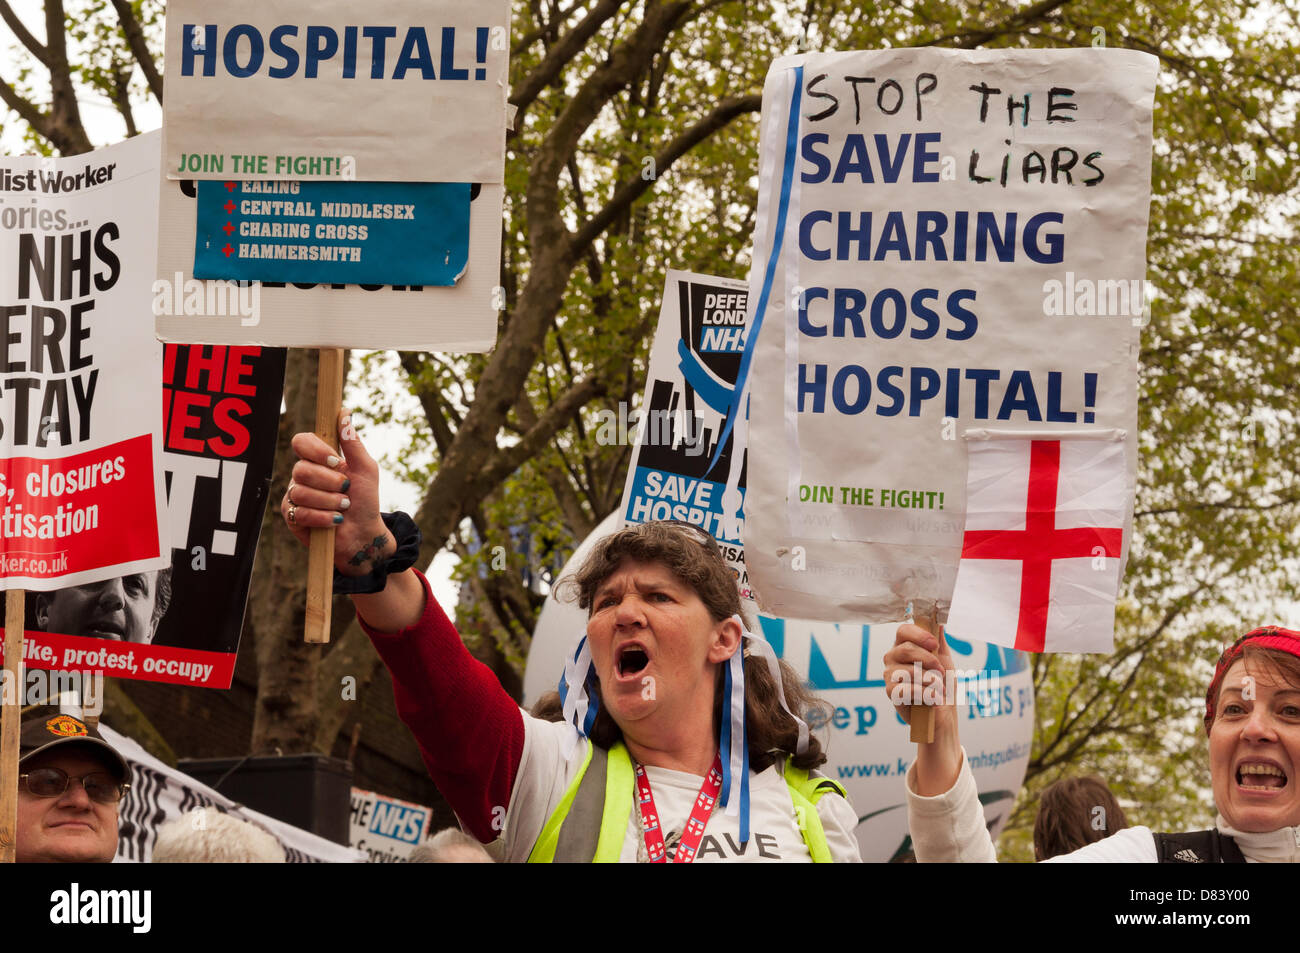 London, UK. 18th May 2013. London residents, medical staff, unions and health campaigners protest against closures - Stock Image